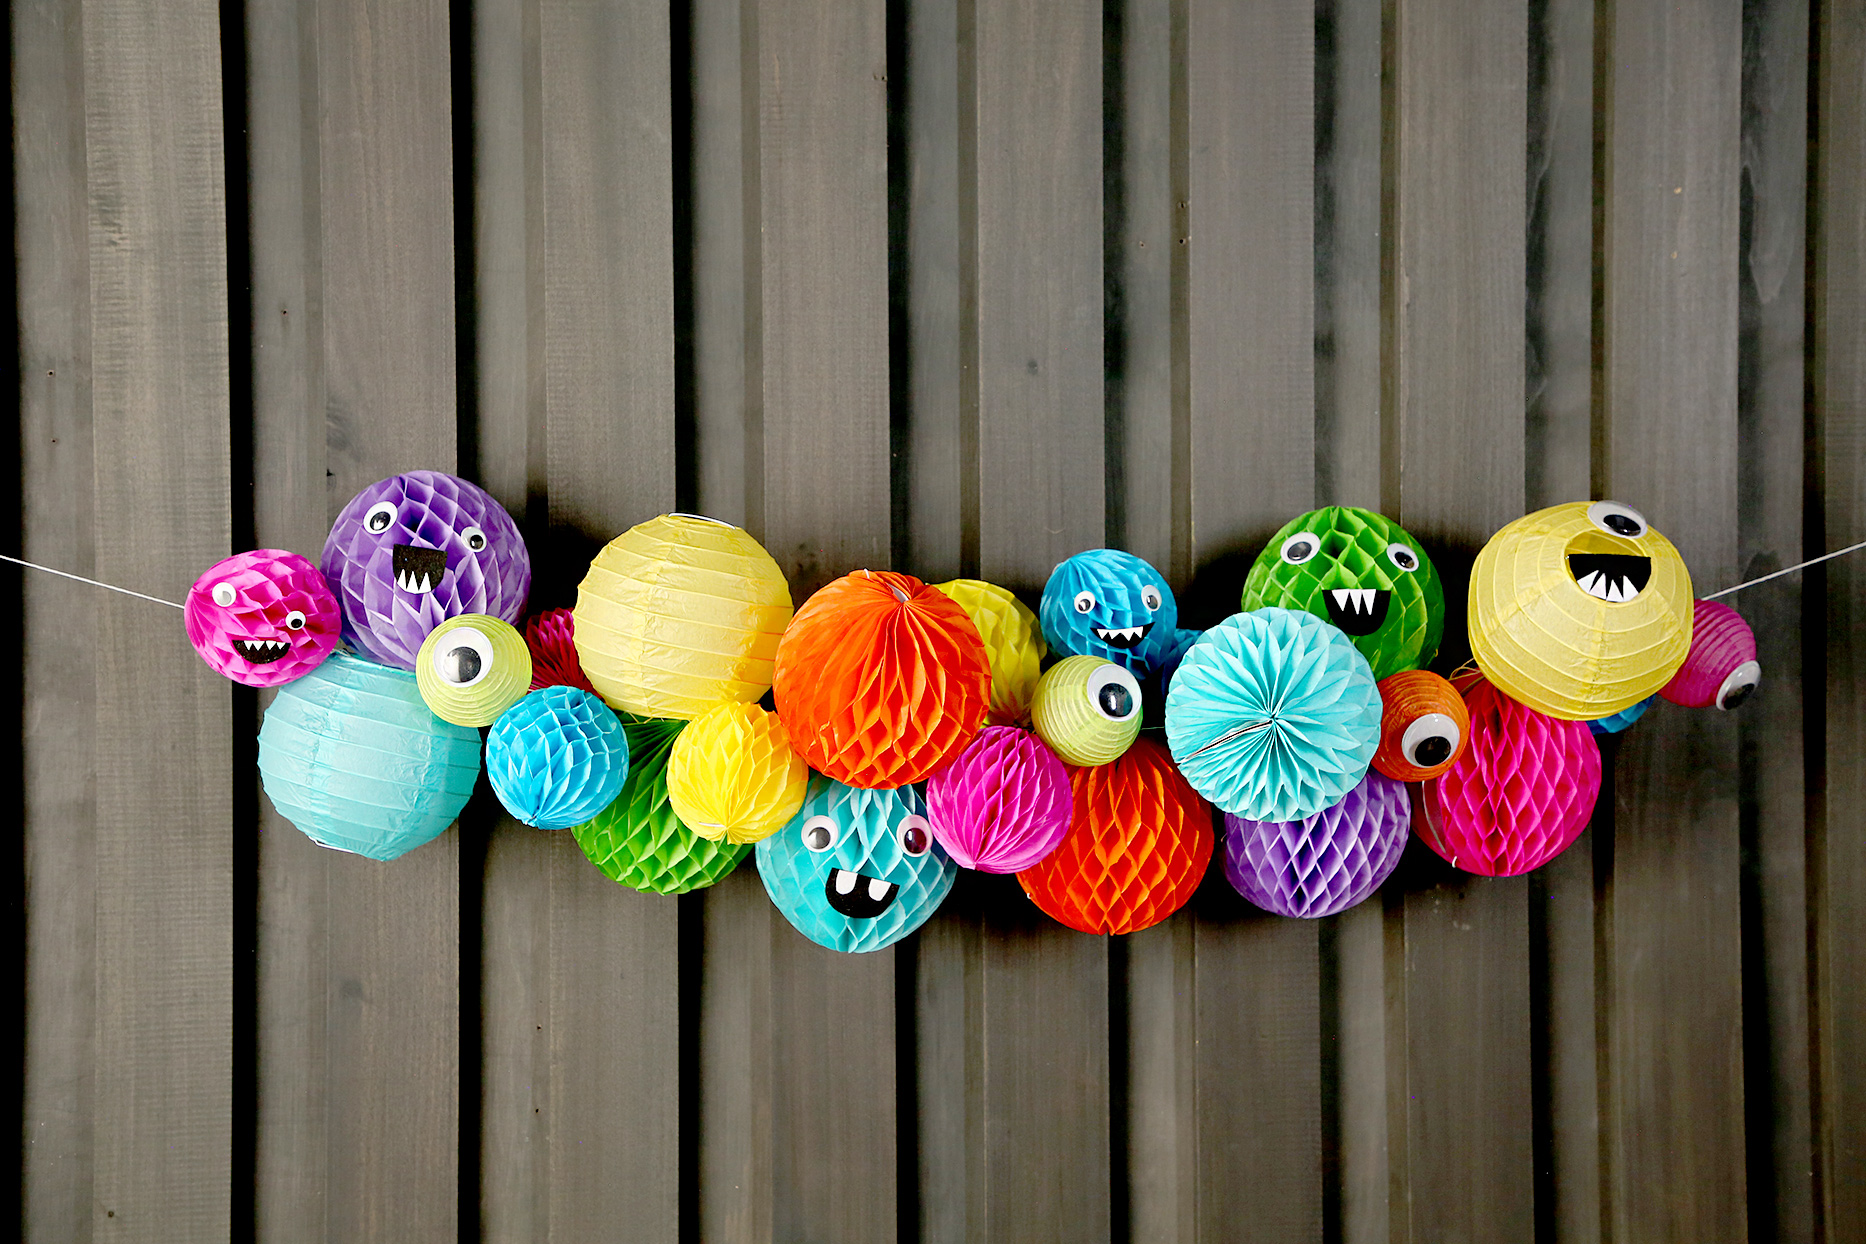 Colorful paper lantern monster garland on wood wall